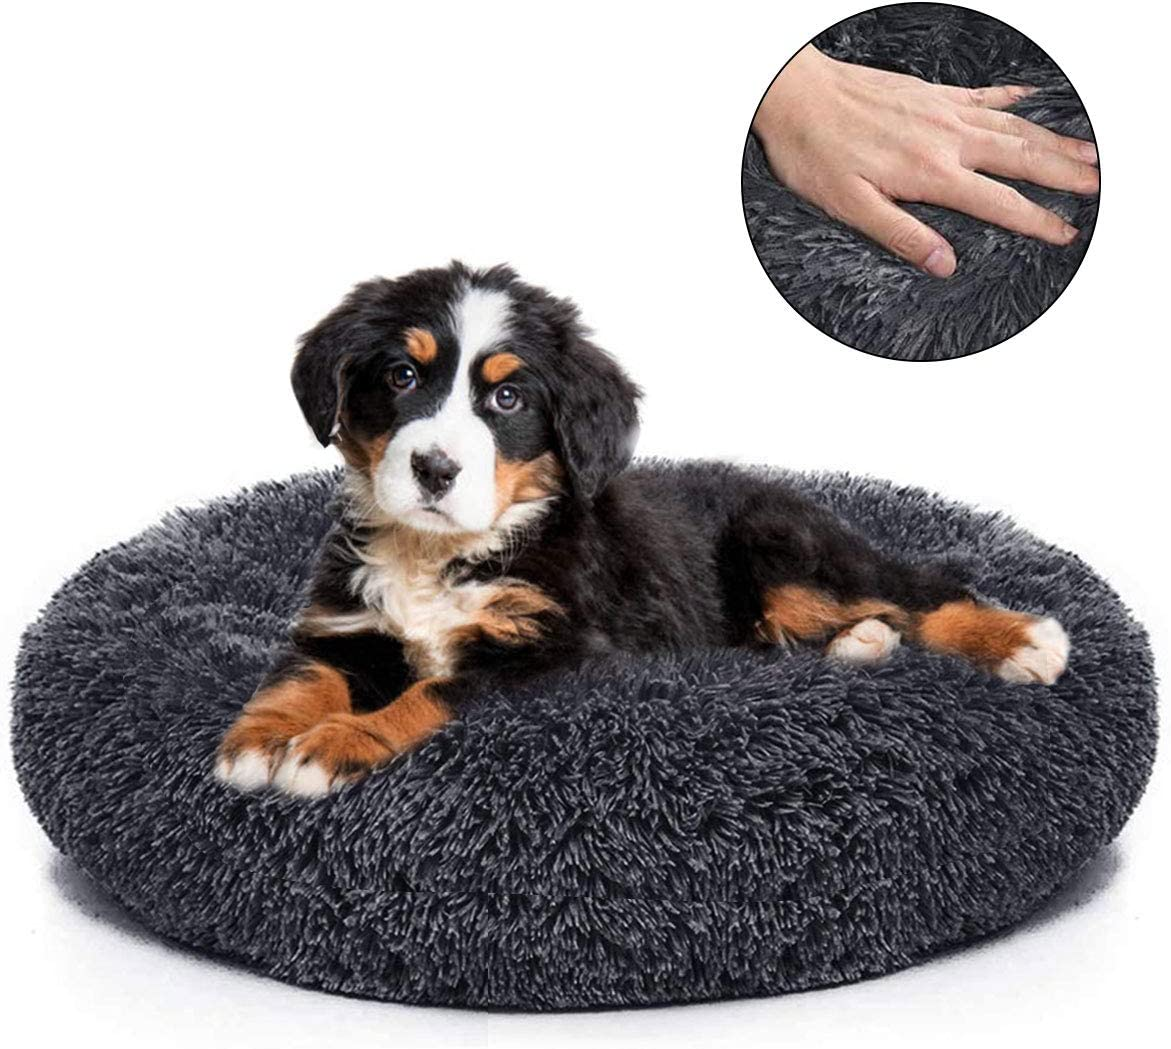 Dog Bed Cat Bed Donut, Comfortable Pet Bed Cuddler Ultra Soft Round Washable Dogs and Cats Cushion Bed with Sponge Non-Slip Bottom for Small Medium Pets 23.6 Self Warming Indoor Snooze Sleeping Bed